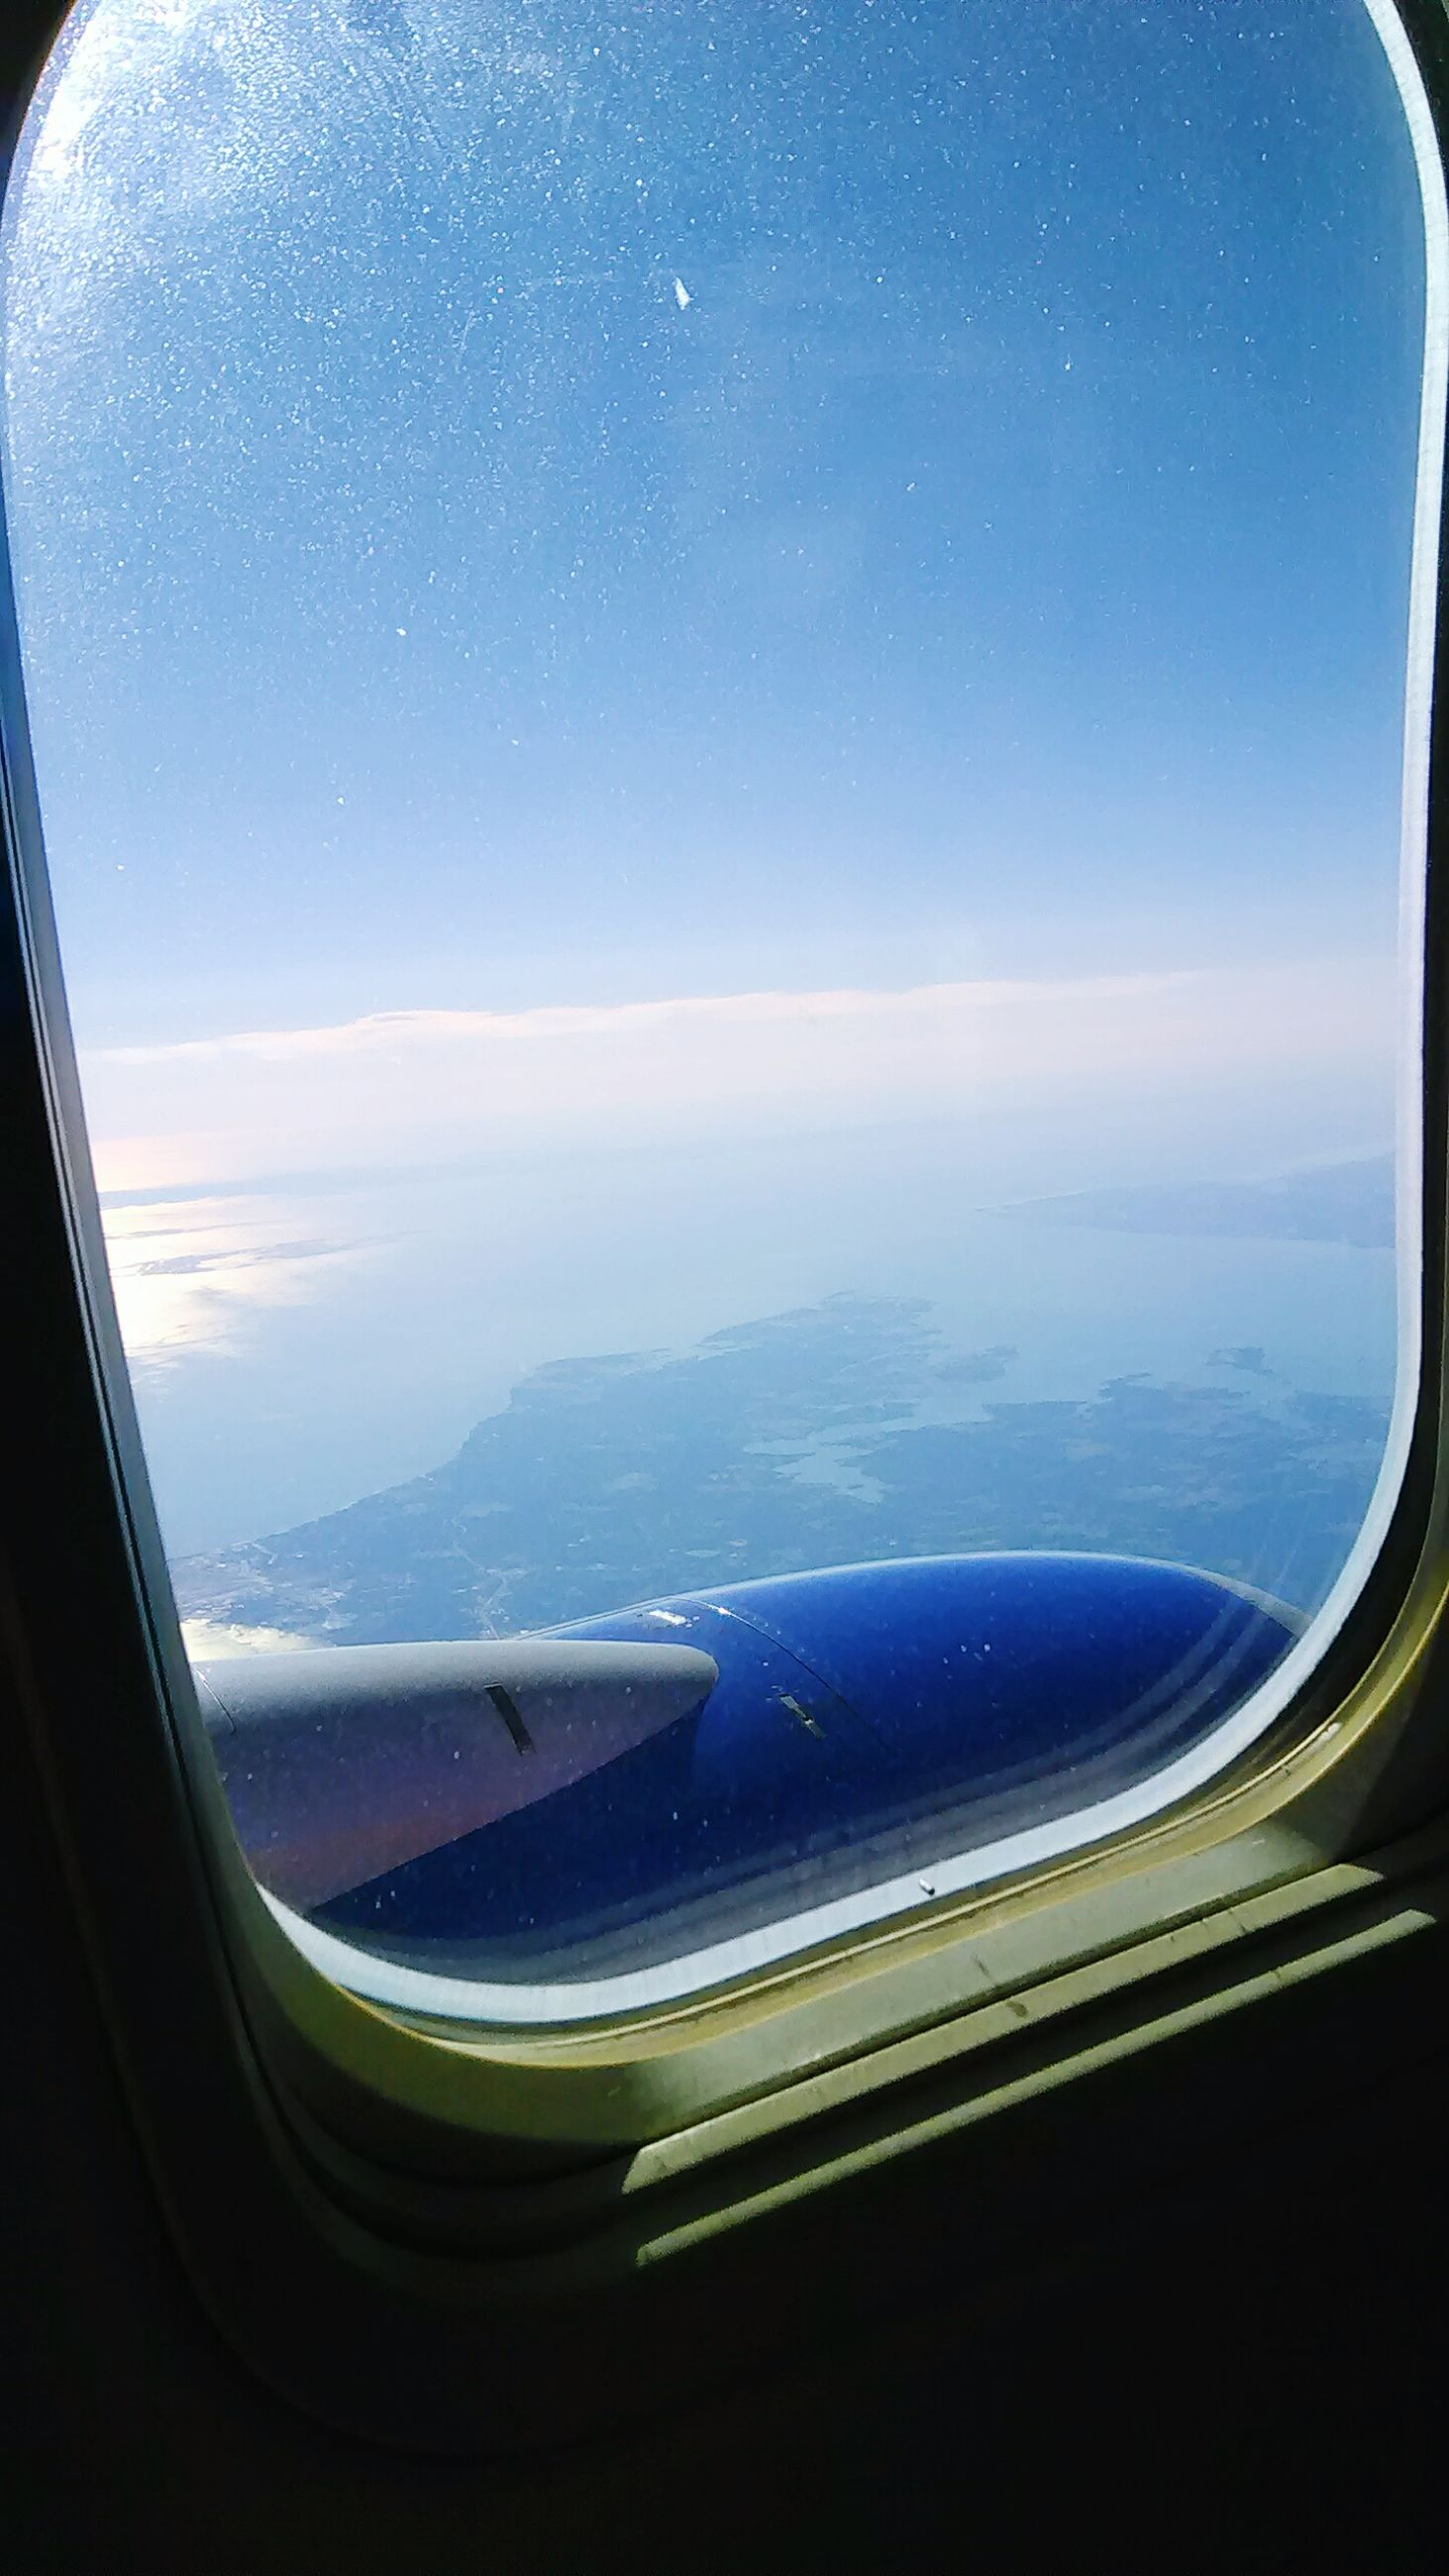 transportation, mode of transport, airplane, air vehicle, vehicle interior, aerial view, aircraft wing, sky, window, travel, on the move, journey, flying, scenics, glass - material, part of, transparent, public transportation, water, sea